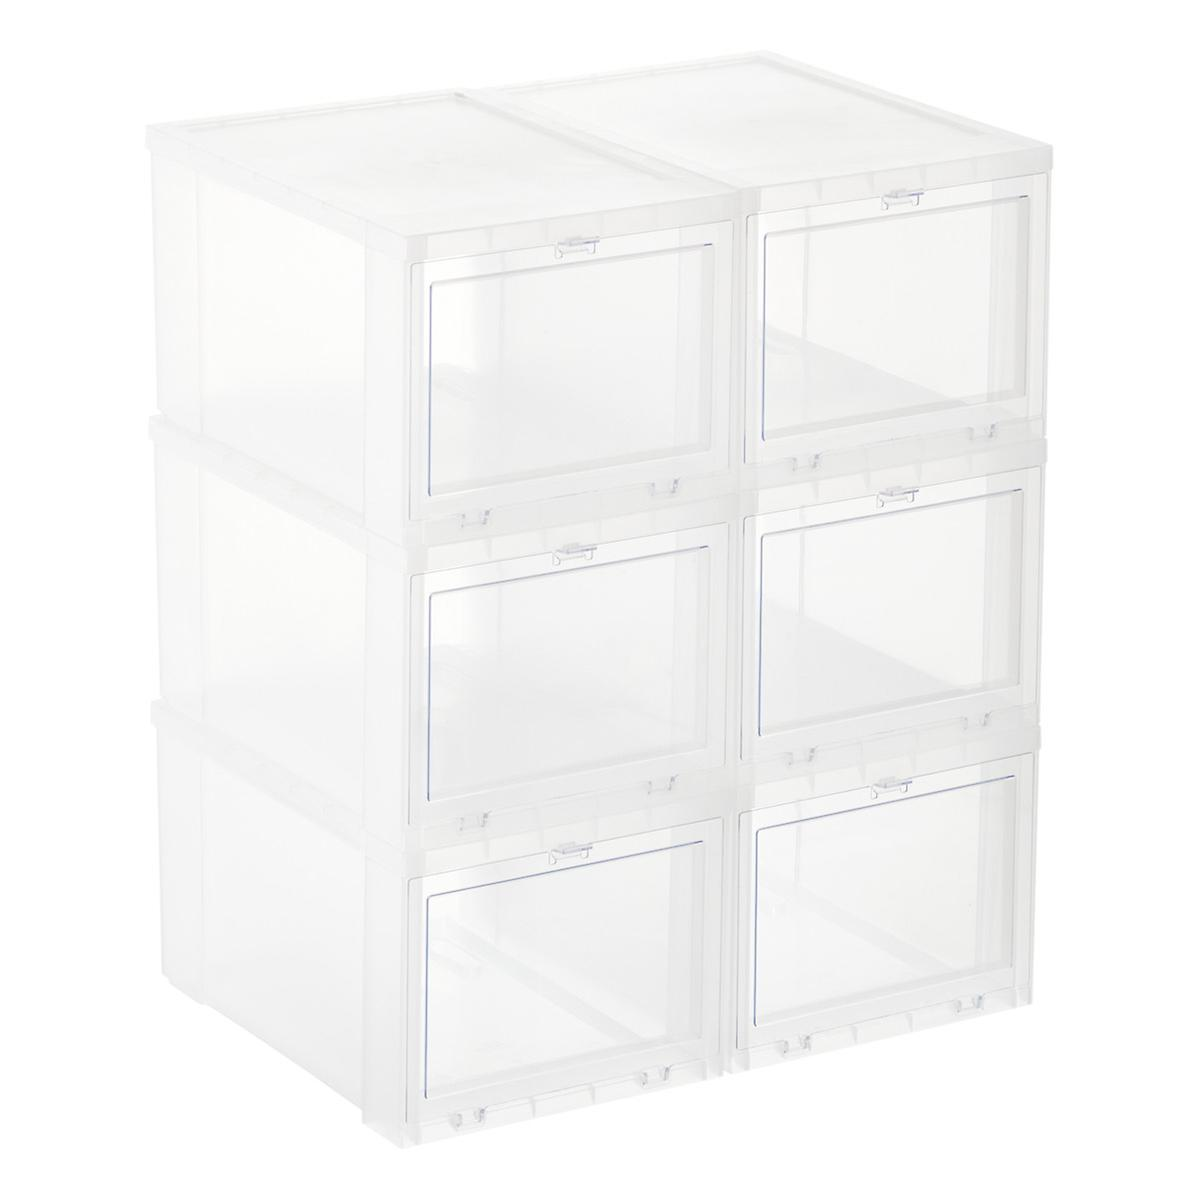 Drop Front Shoe Boxes Sneaker Storage Boxes The Container Store